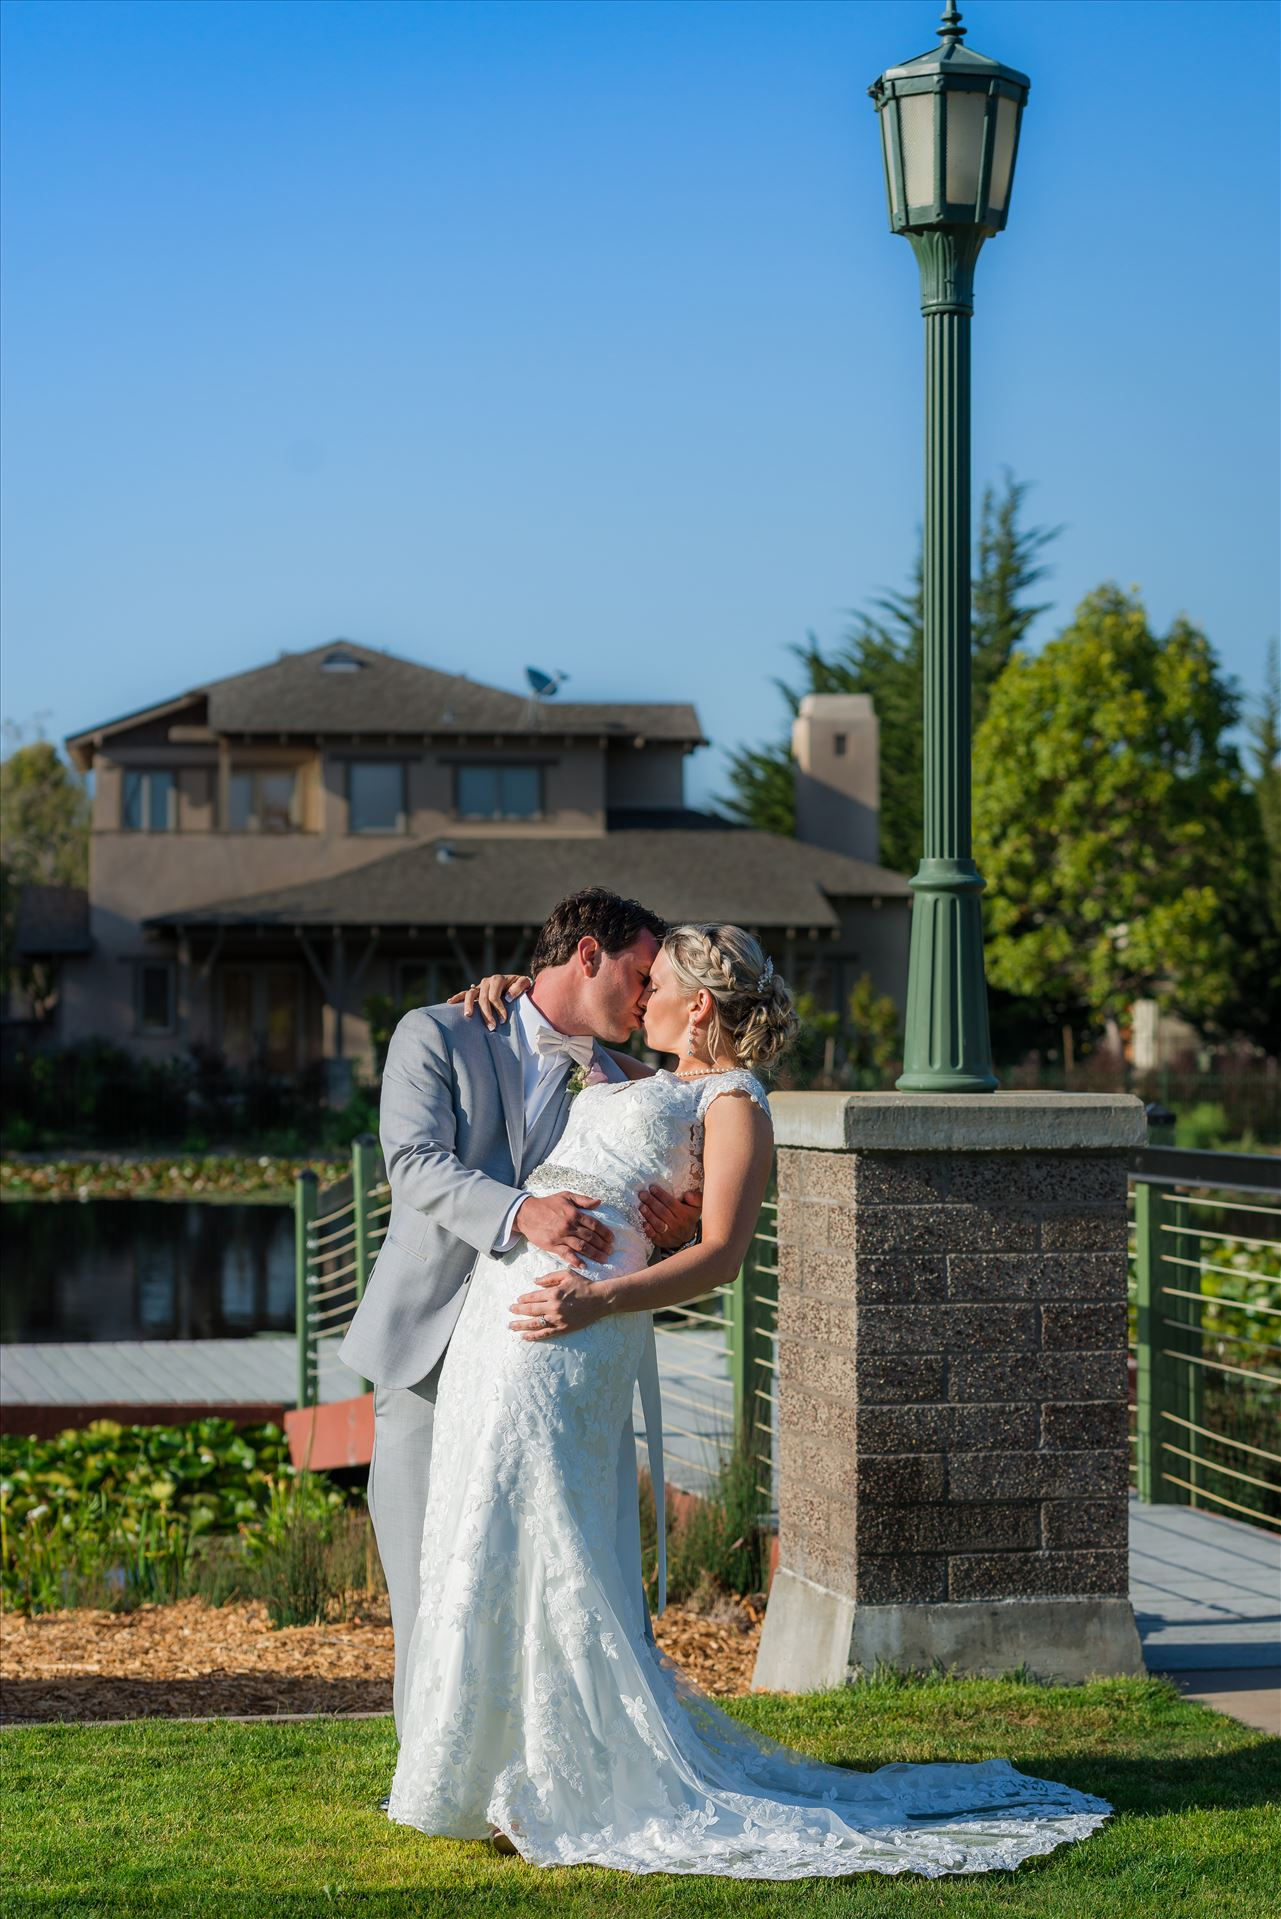 SP Gallery-9345.JPG - Cypress Ridge Pavilion Wedding Photography by Mirror's Edge Photography in Arroyo Grande California.  Bride and Groom dip by Sarah Williams